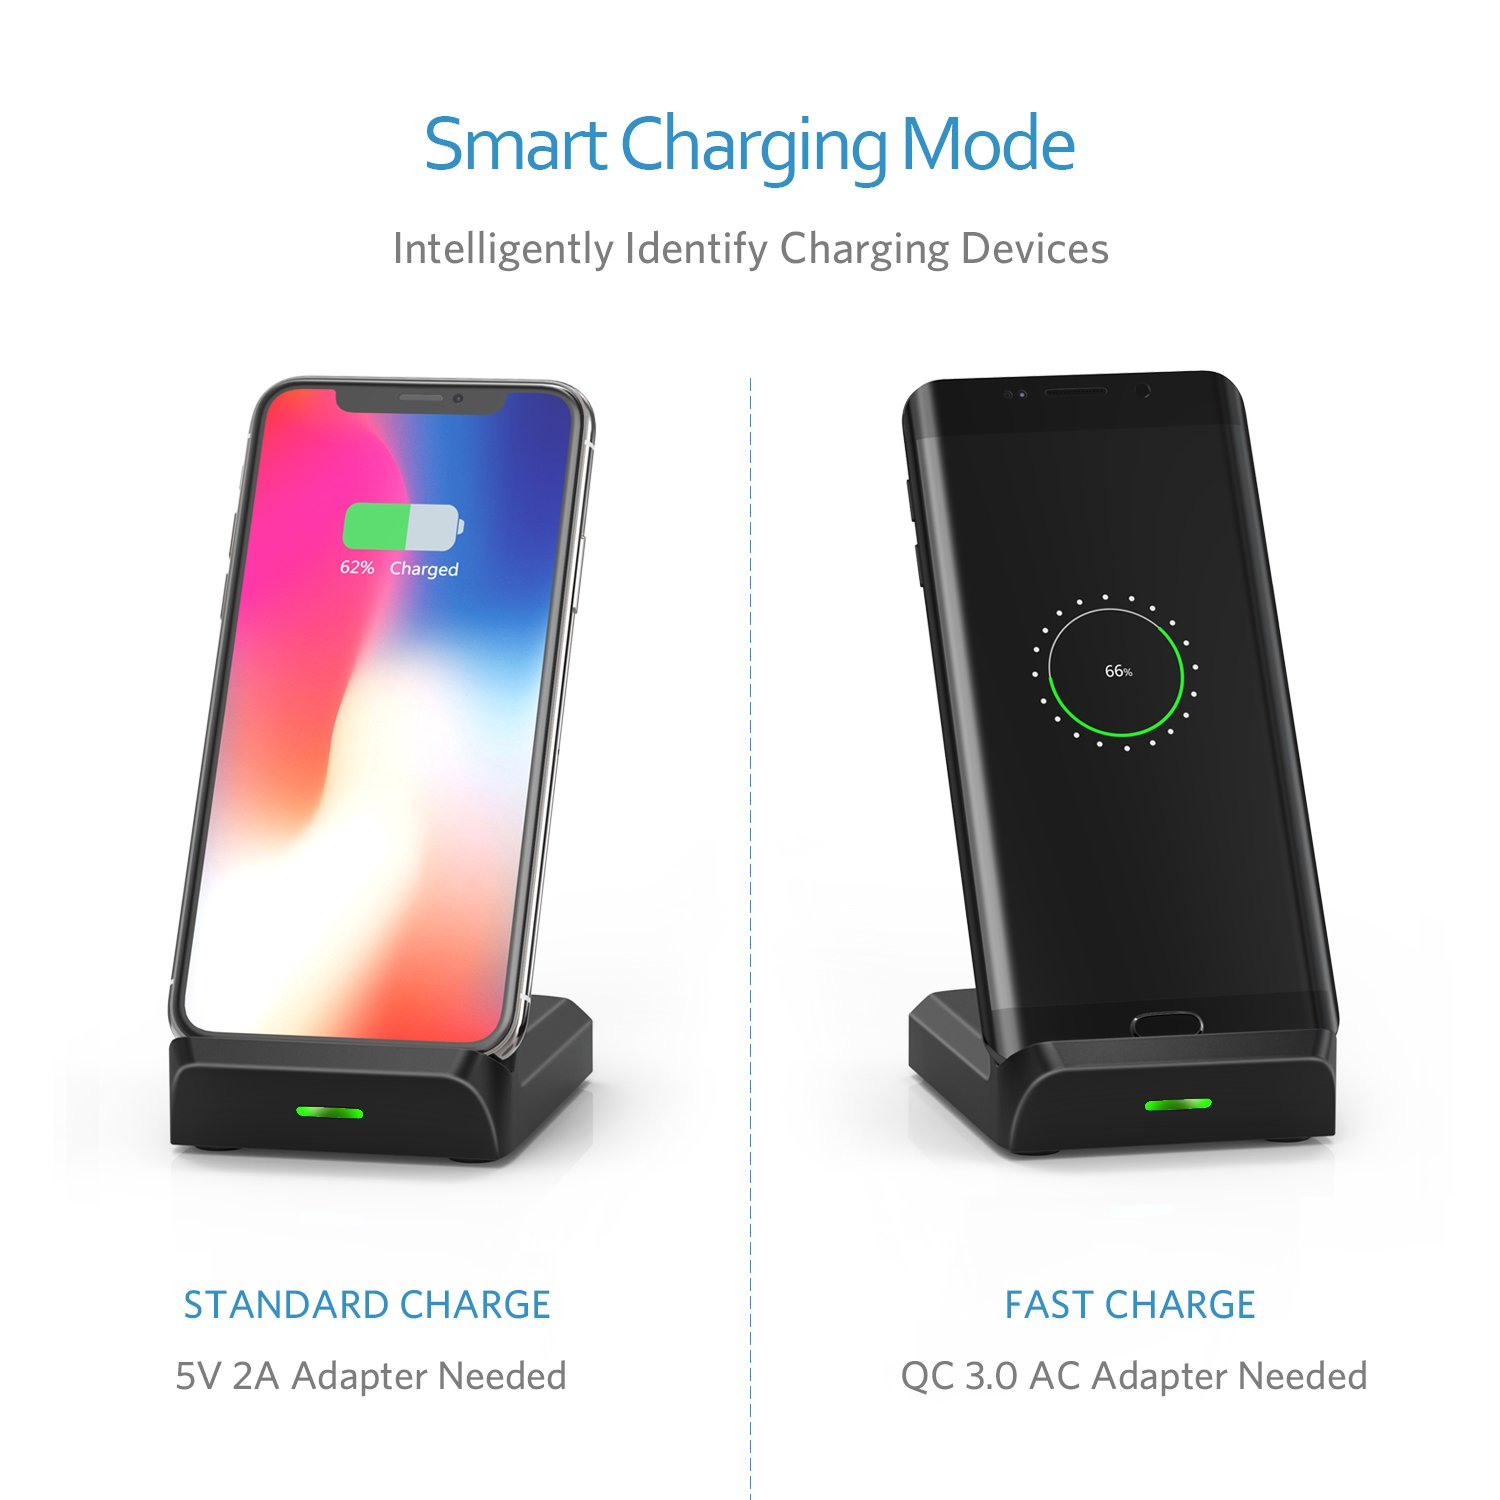 Wireless Charger, Vodool Qi-Certified 10W Fast Wireless Charging Pad Stand Compatible iPhone X, iPhone 8/8 Plus, Samsung Galaxy S9 / S9+ / S8 / S8+ / S7 / Note 8 and More (No AC Adapter) (Q750)